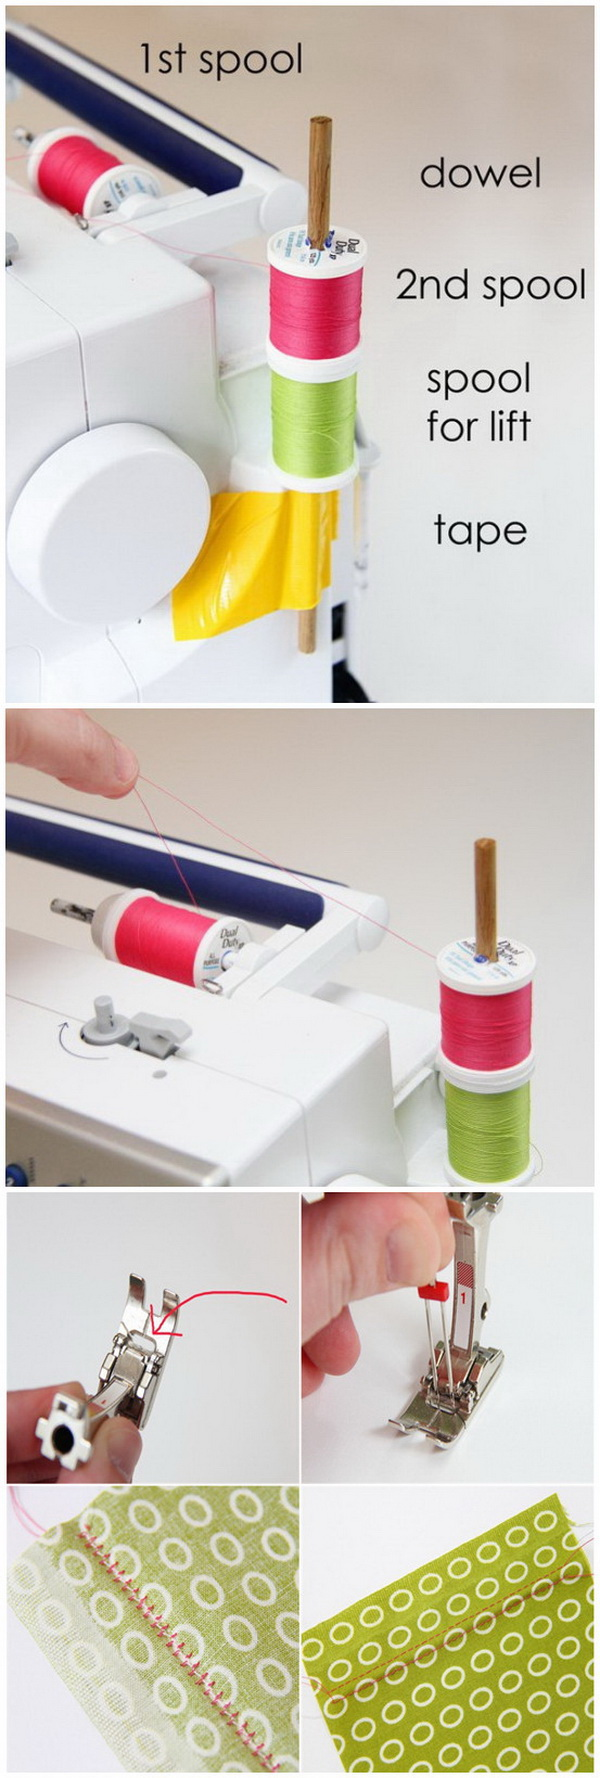 Genius Sewing Tips & Tricks: Using The Double Needle in Your Sewing Project Without The 2nd Spool Holder.